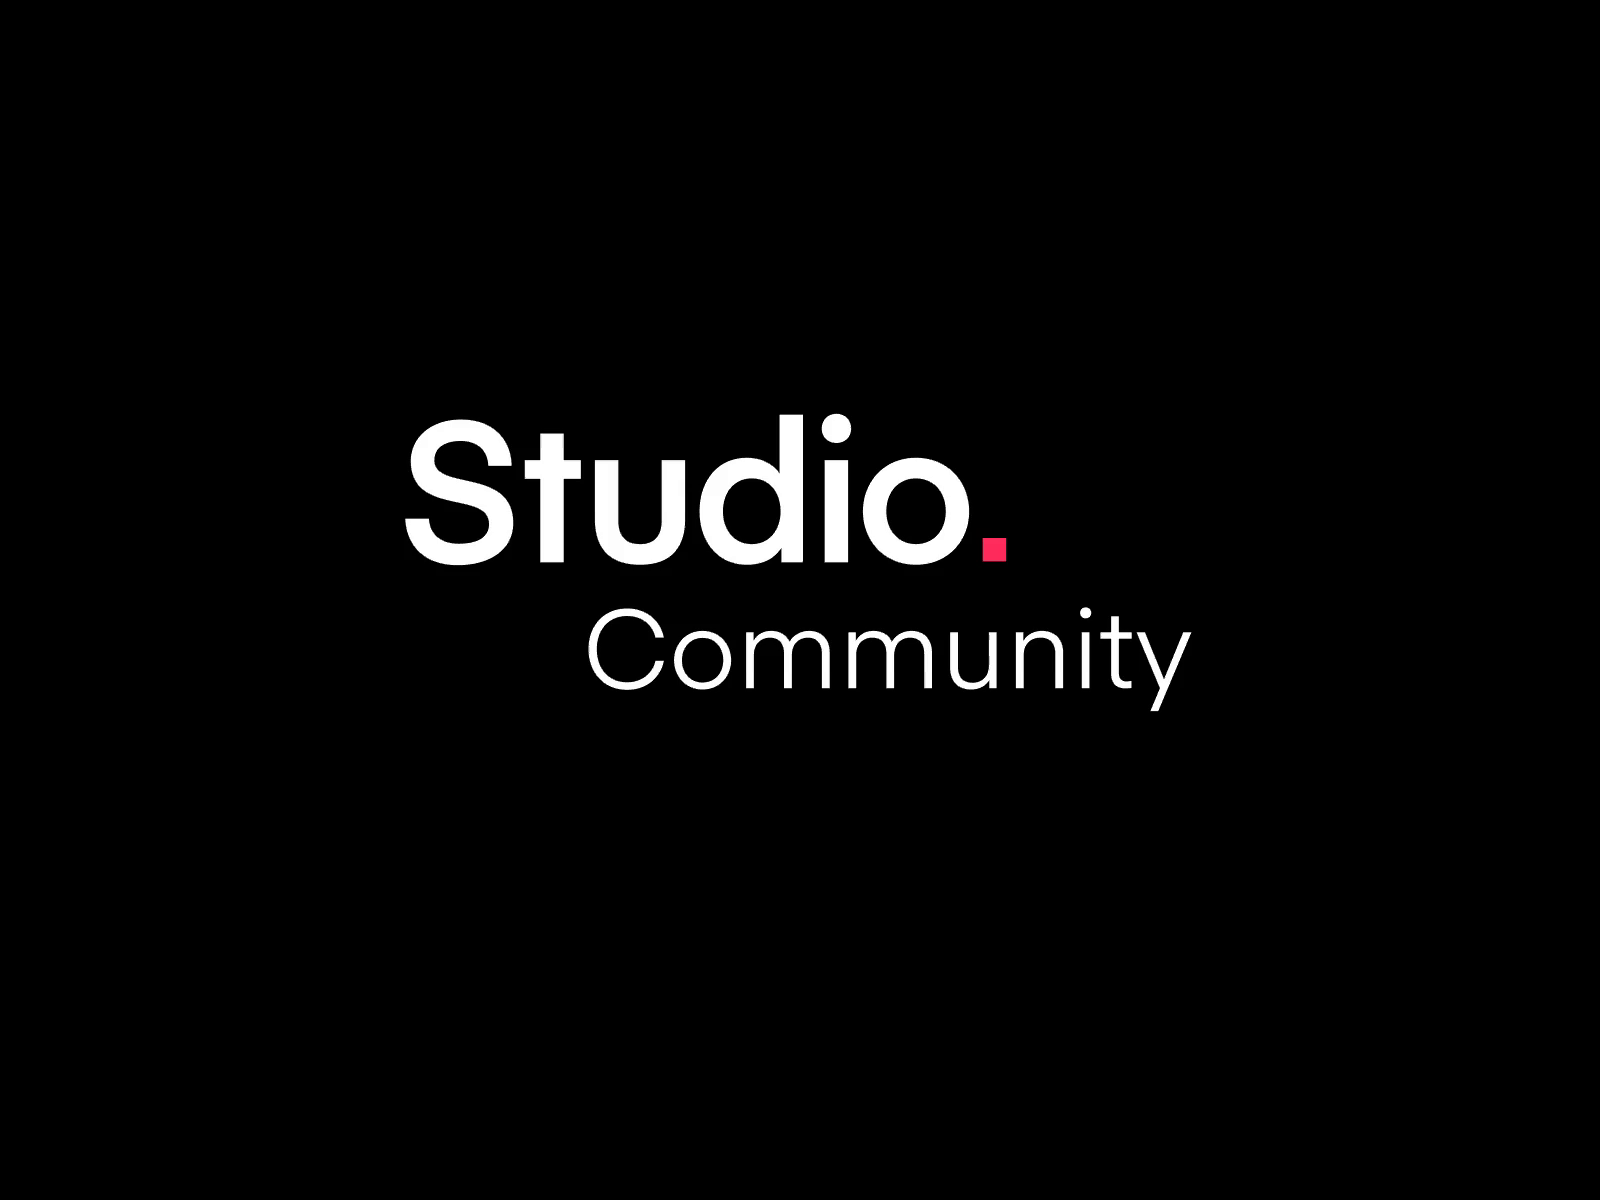 5000 Studio Facebook Group Members by Charles Patterson for InVision